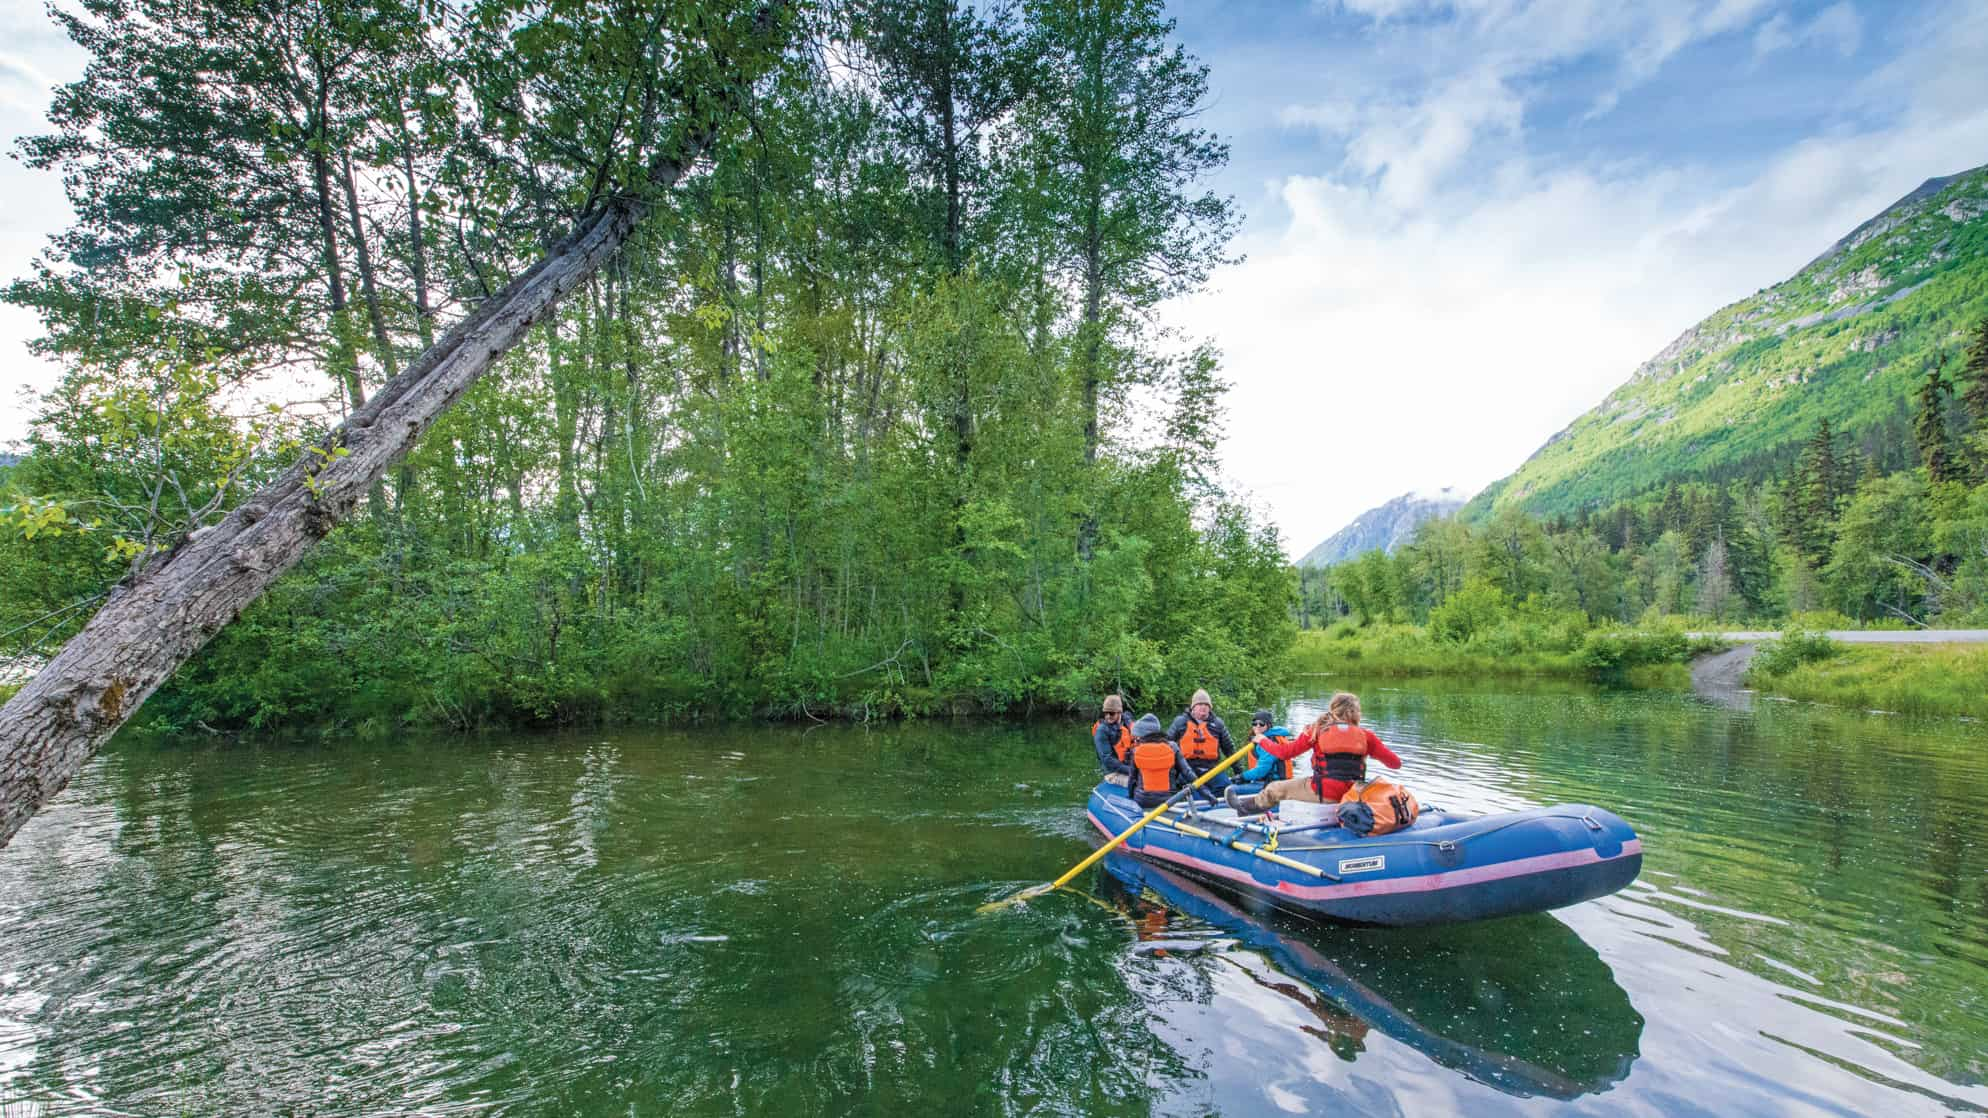 Small ship cruise guests rafting down the Chilkat River in Alaska's Chilkat Bald Eagle Preserve in Haines